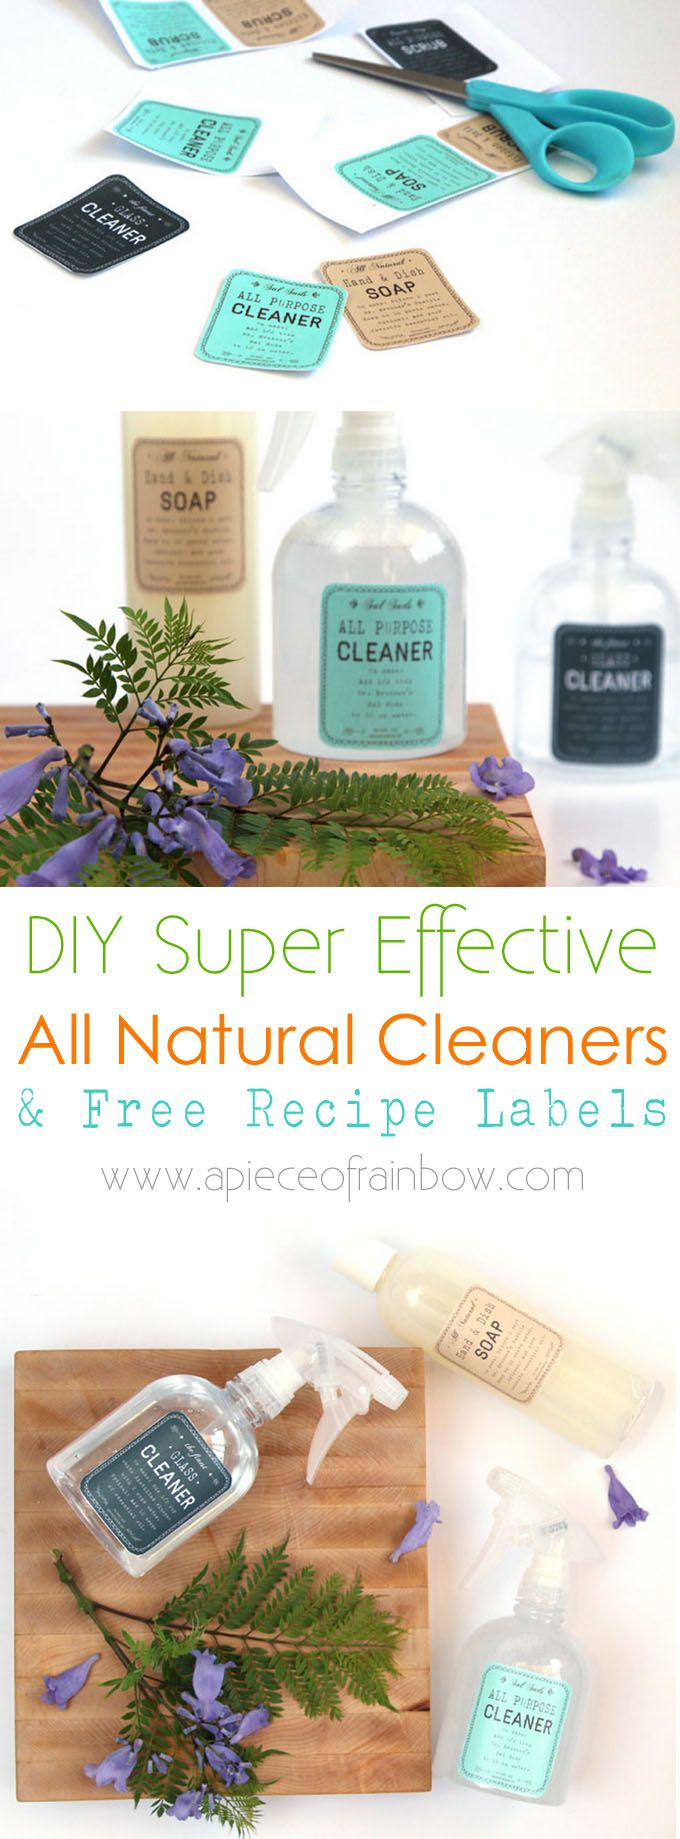 DIY Super Effective Green Cleaning Products and Free Recipe Labels : How to make all natural, super effective & low cost green cleaning products easily. Download free beautiful recipe labels to easily make your own in future! - A Piece Of Rainbow